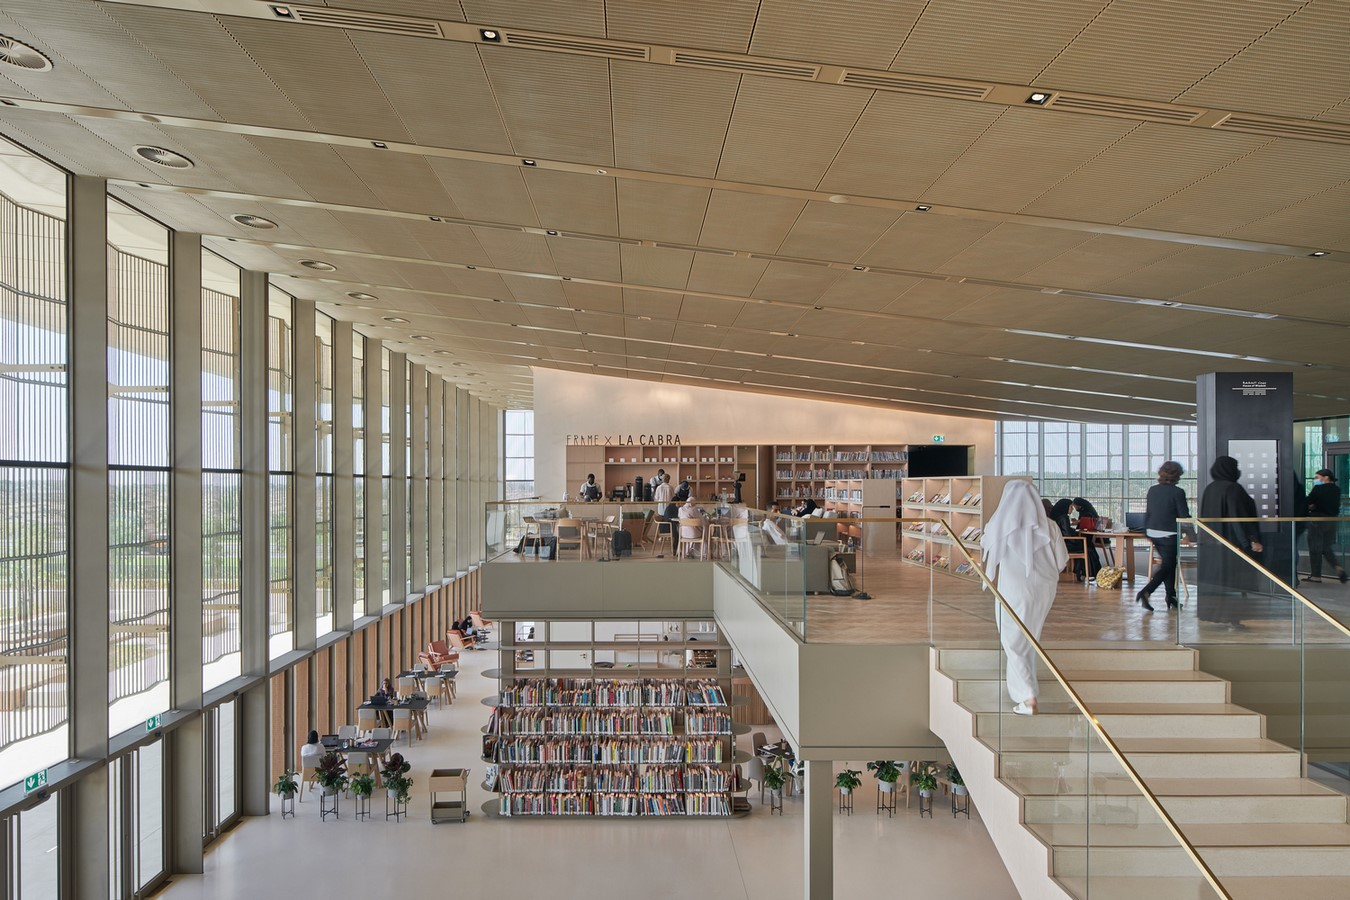 New Library And Culture Centre With Large Floating Roof In Sharjah completed by Foster + Partners - Sheet5